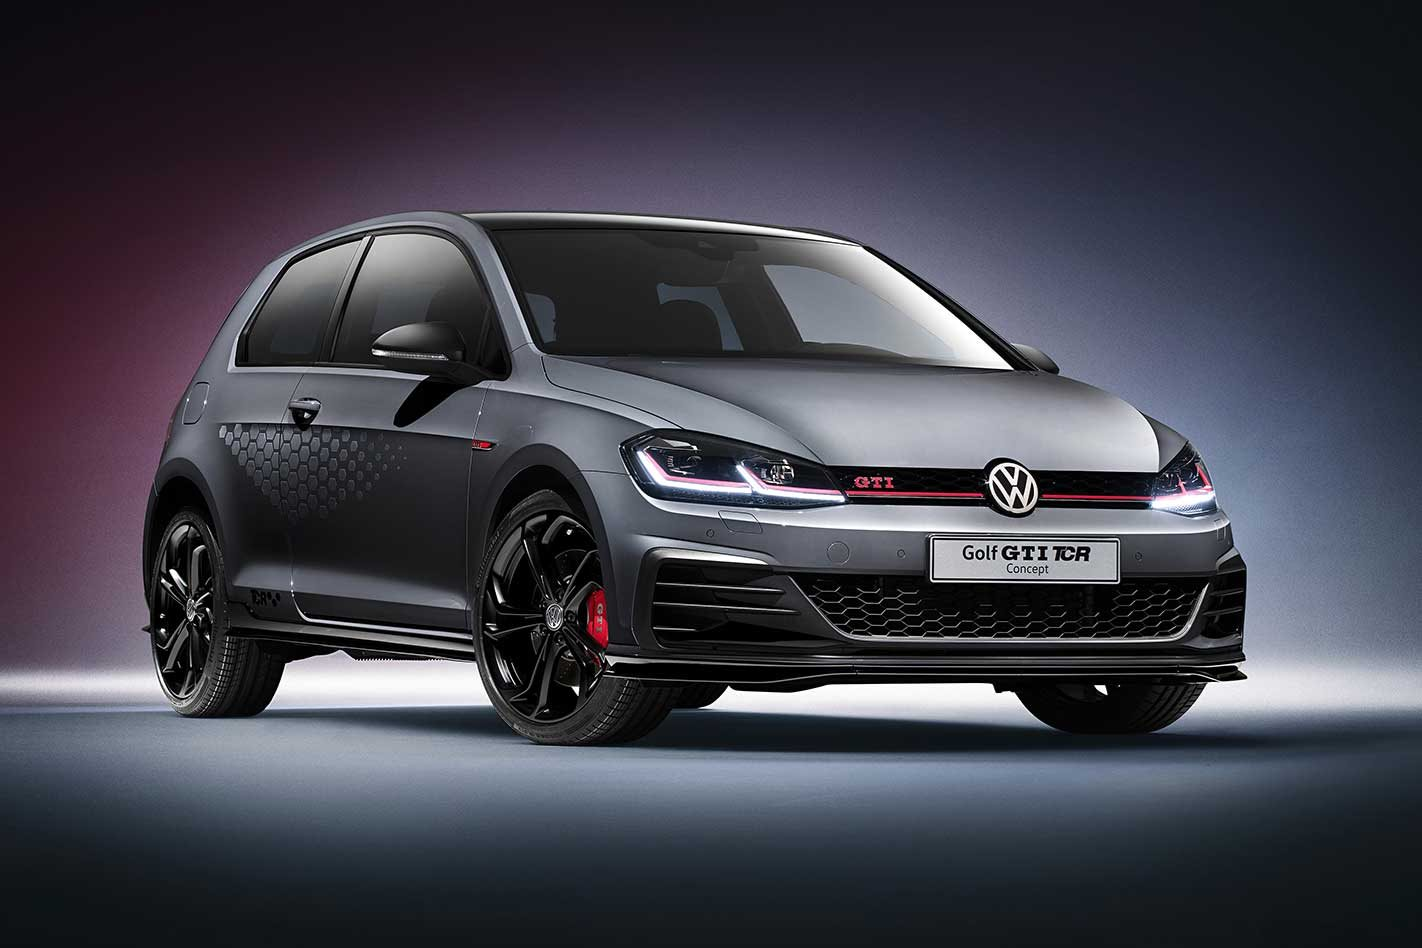 2019 volkswagen golf gti tcr confirmed for australia